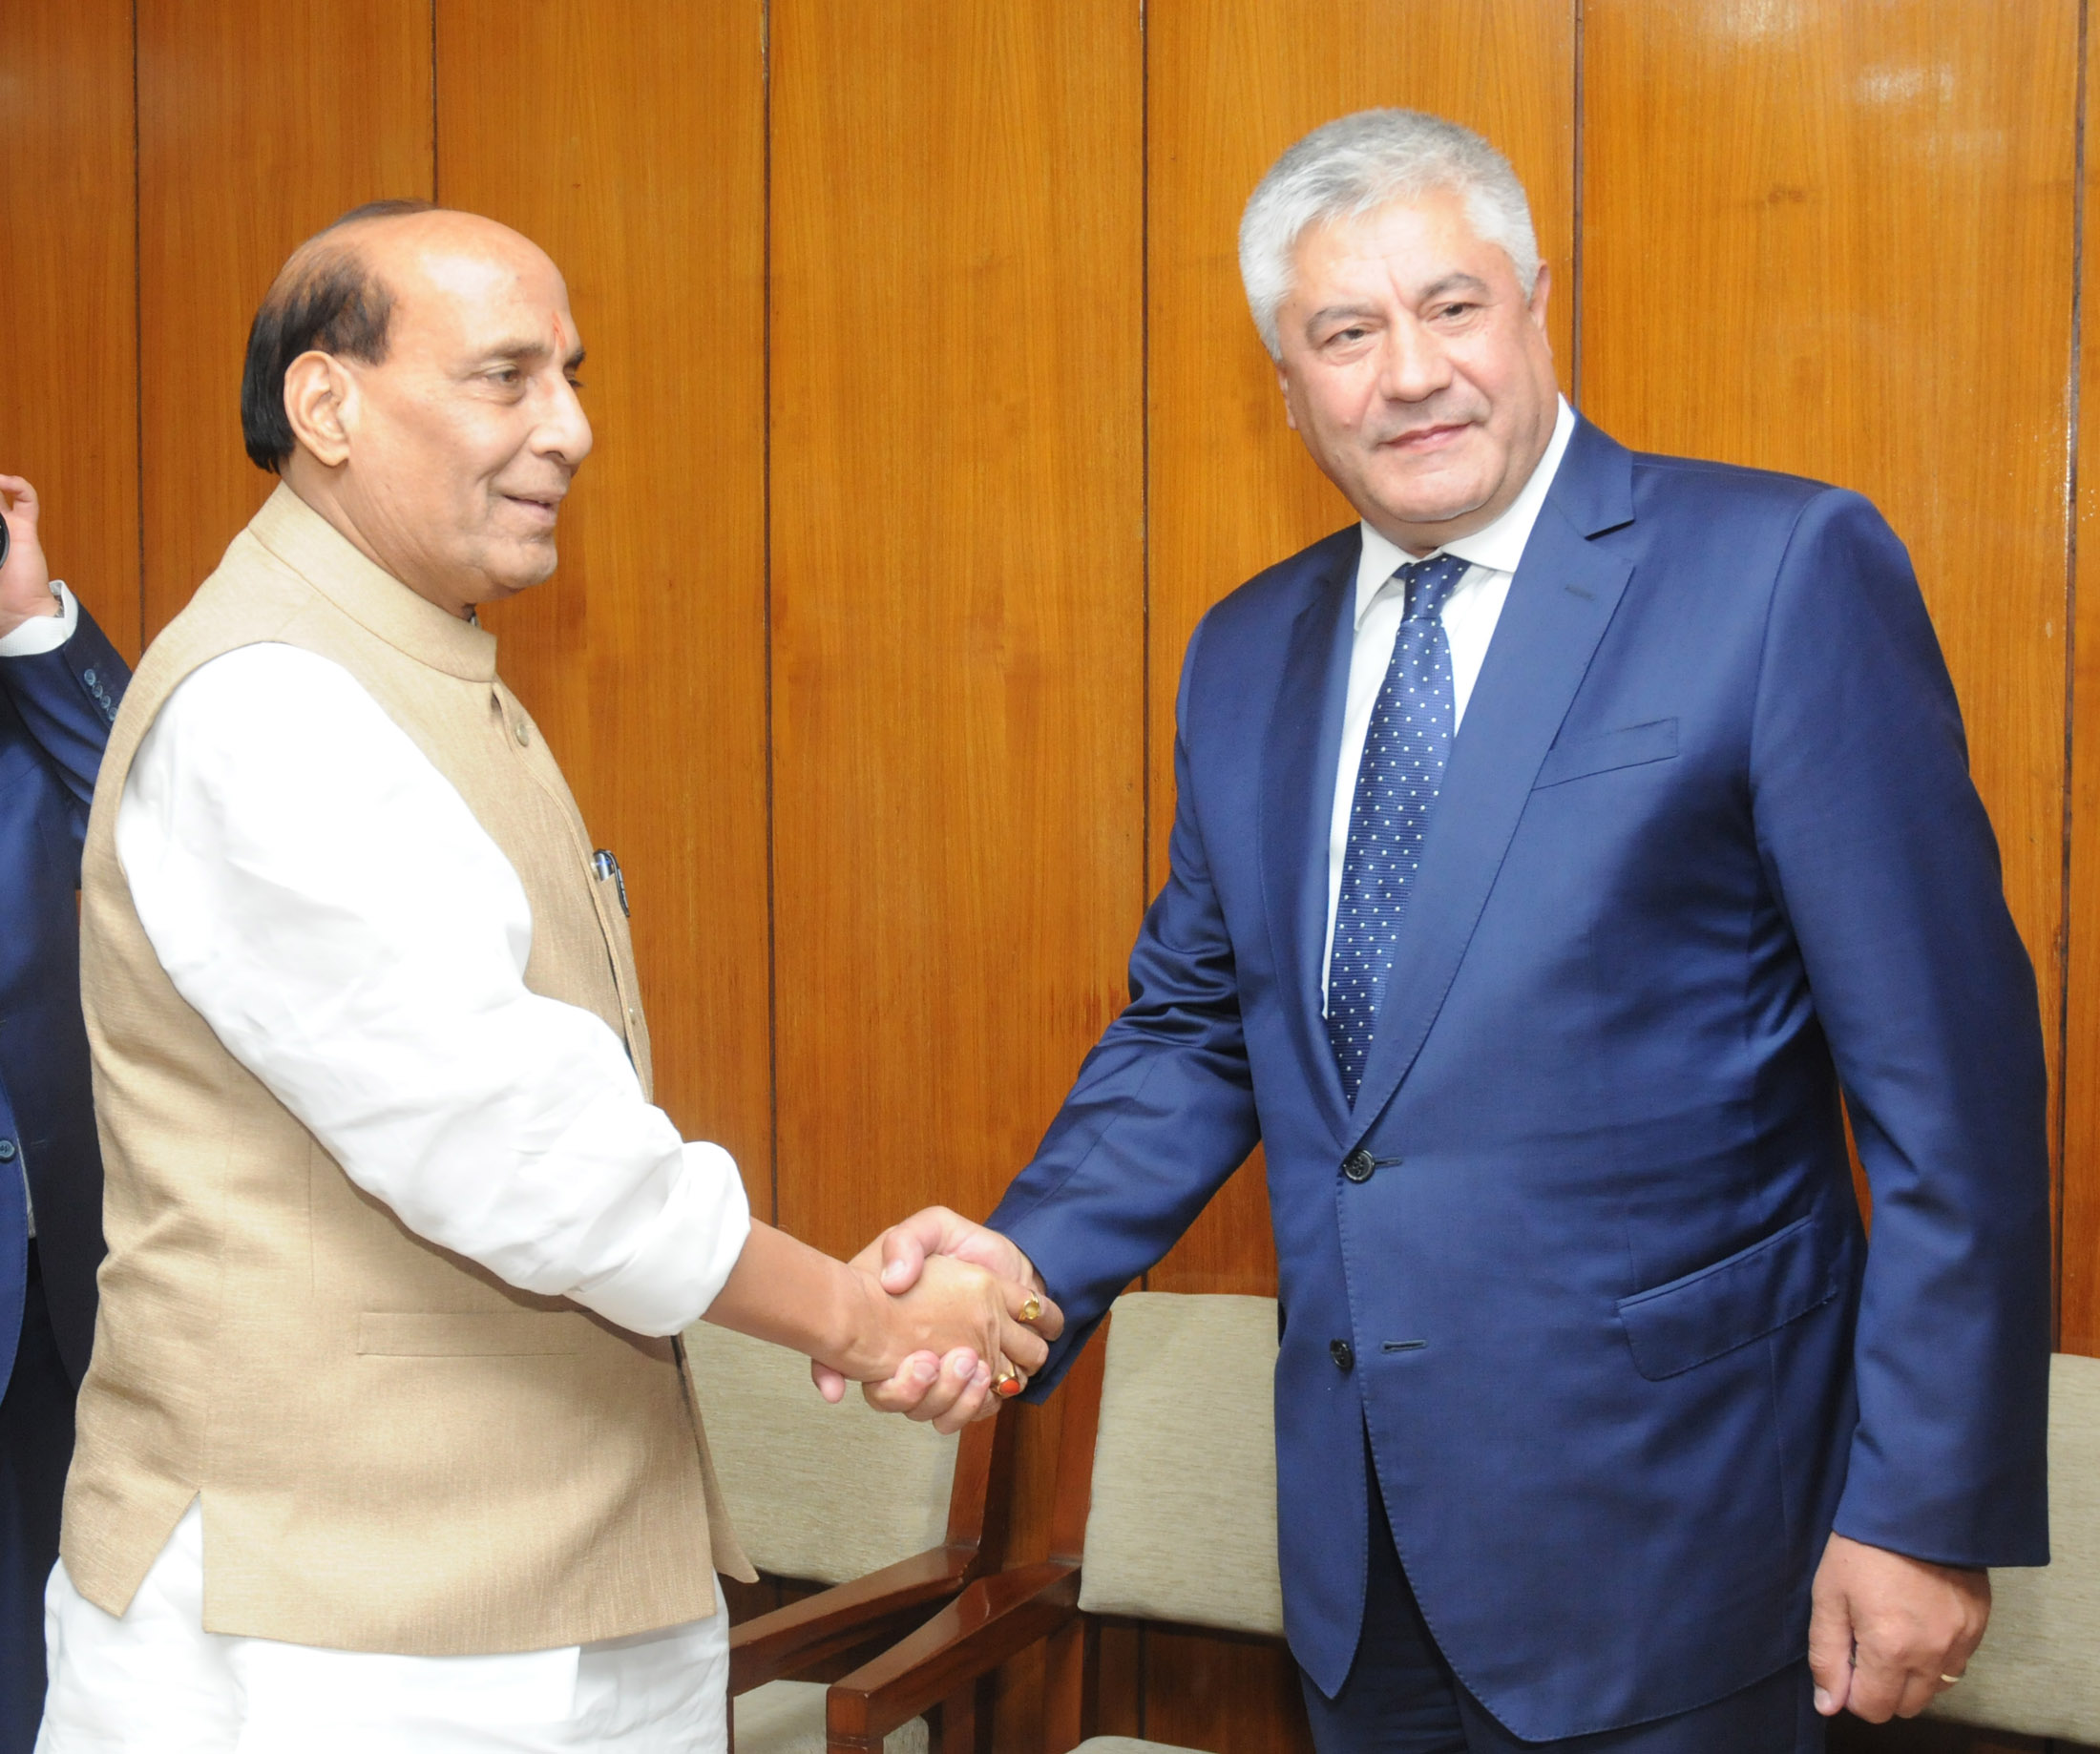 The Union Home Minister, Shri Rajnath Singh shaking hands with the Minister of the Interior of Russia, Mr. Vladimir Kolokoltsev, during the Home Minister's meeting, in New Delhi on September 07, 2015.